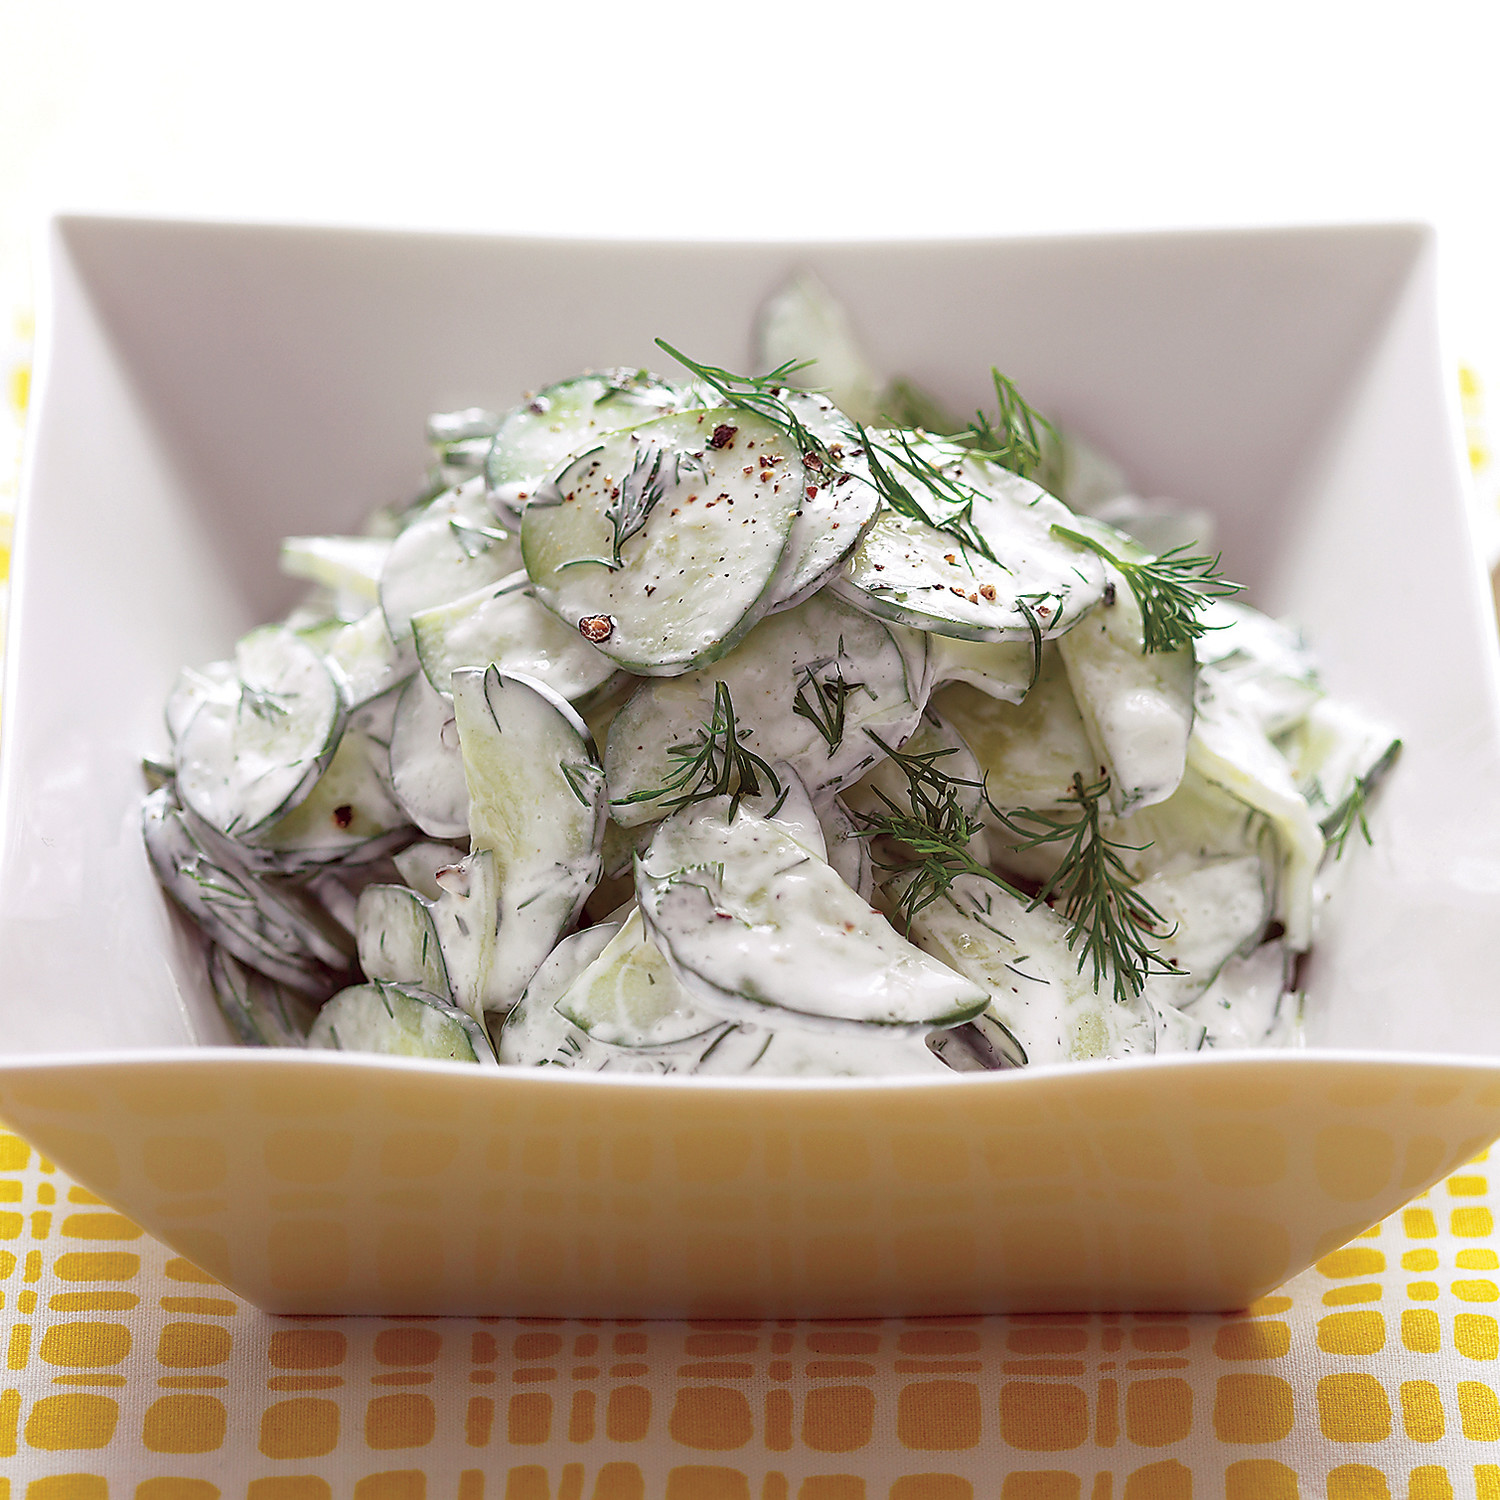 ... creamy cucumber salad vegan cucumber salad with creamy cucumber salad